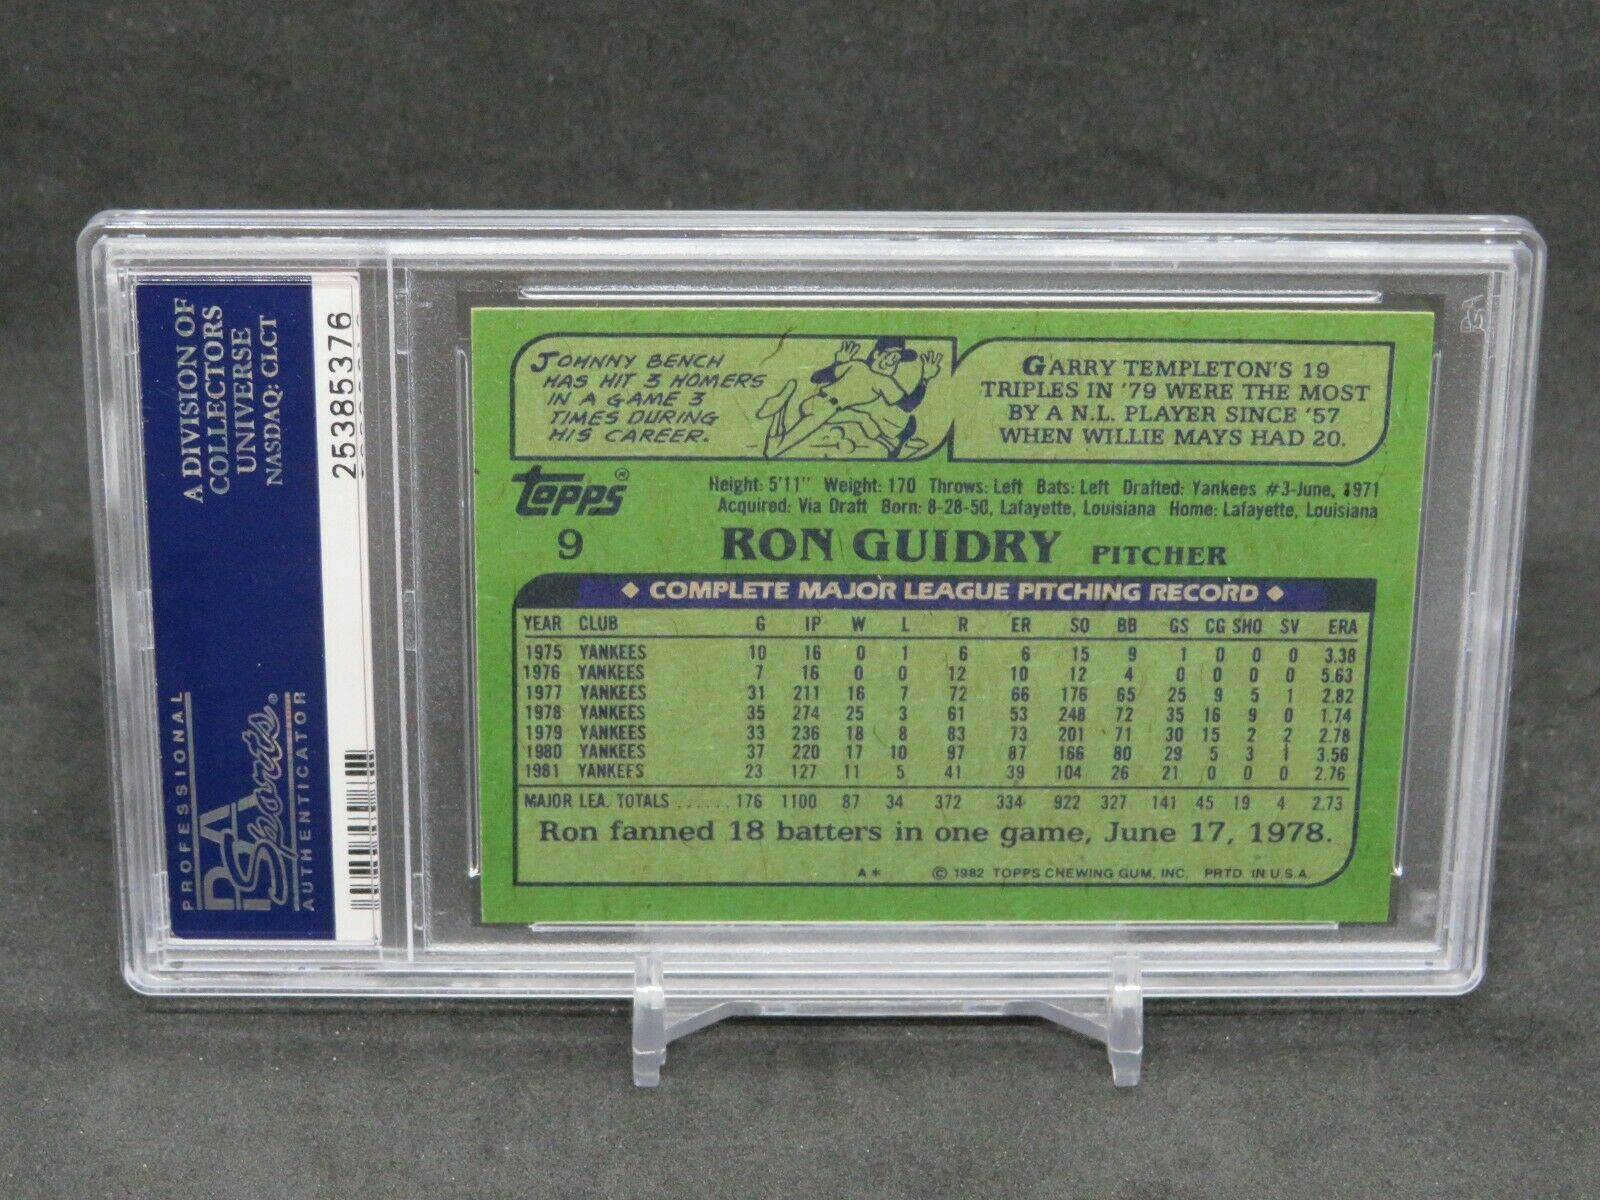 1982 TOPPS RON GUIDRY #9 PSA 9 MINT NEW YORK YANKEES MS - Image 2